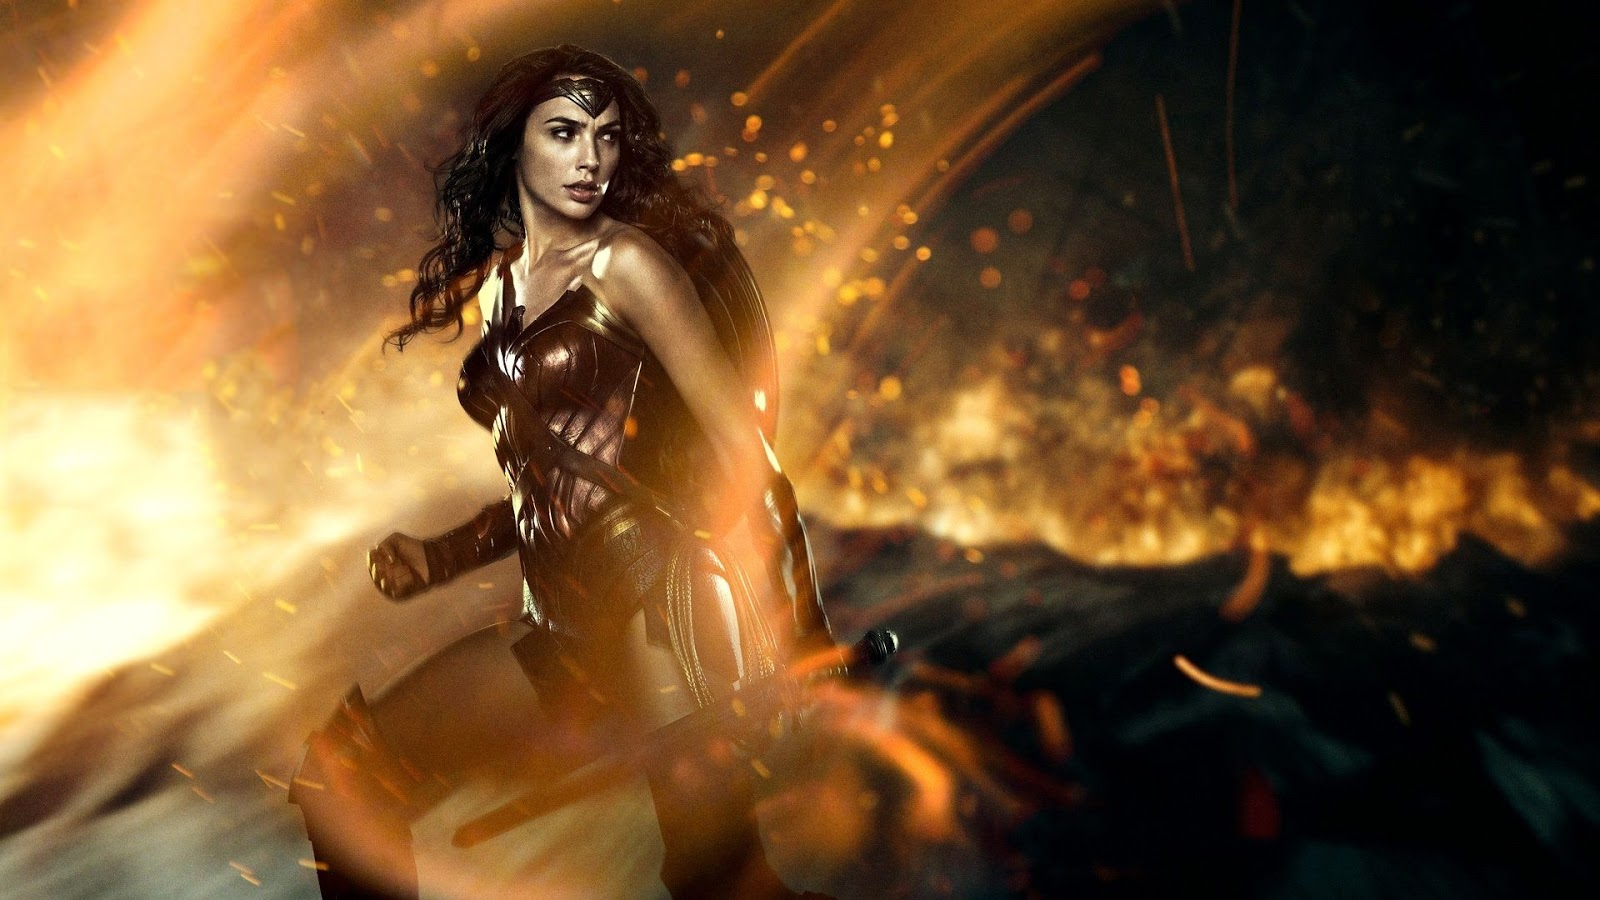 wonder-woman-hd-wallpaper-for-mobile